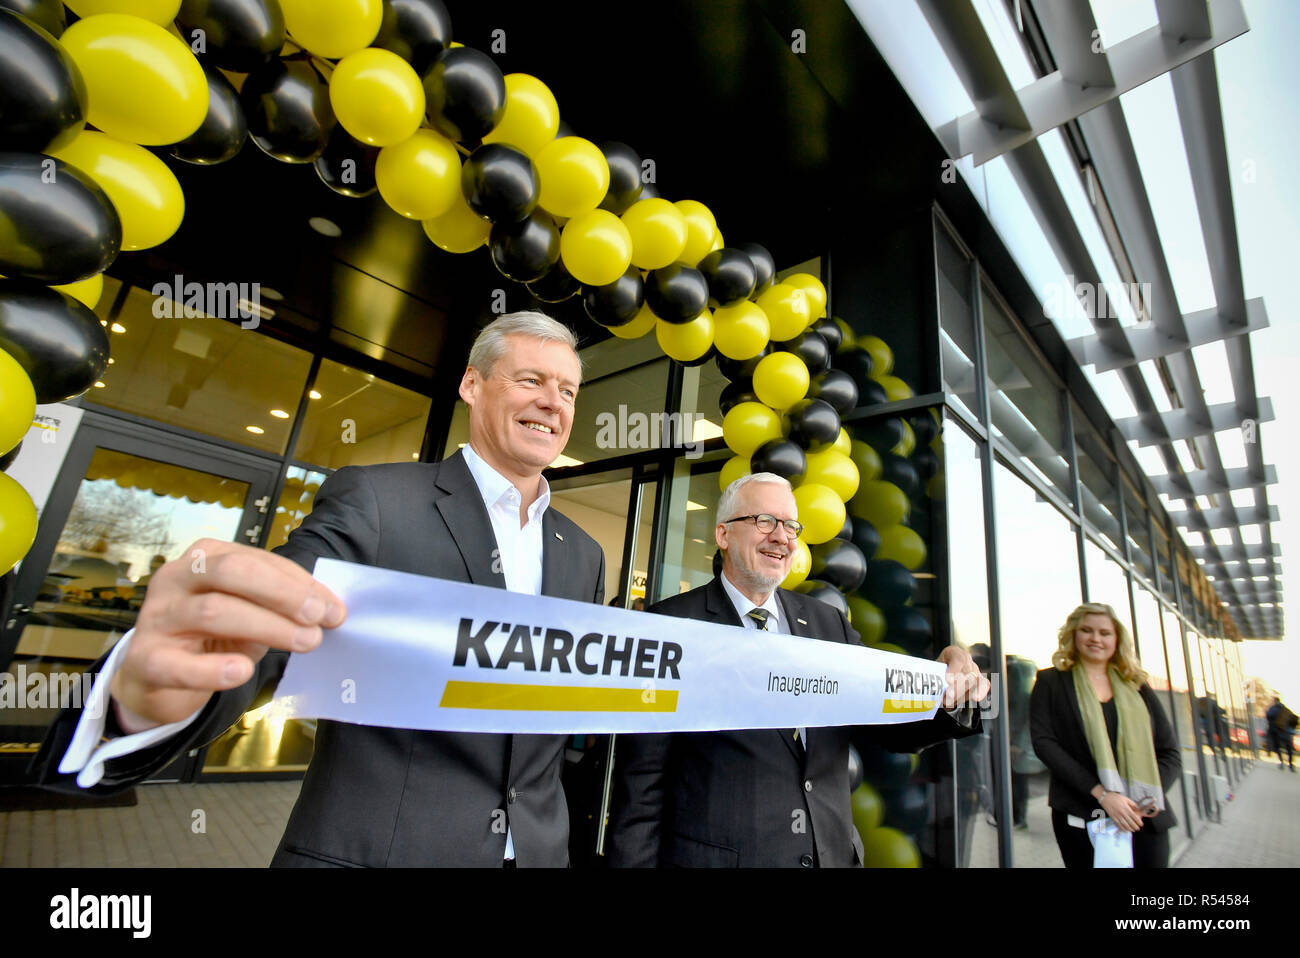 Karcher CR, a company specialising in the development, production and sales of cleaning devices, saw its sales rise by 15 percent to Kc592.3m last year, its net profit growing by 11.5 percent to Kc39.9m, company executive Milada Skutilova, not pictured, told in Prague, Czech Republic, November 29, 2018. Karcher CR today opened its new seat in Modletice near Prague, the construction of which has cost Kc140m. From left HARTMUT JENNER and JOHANNES KARCHER. (CTK Photo/Vit Simanek) - Stock Image